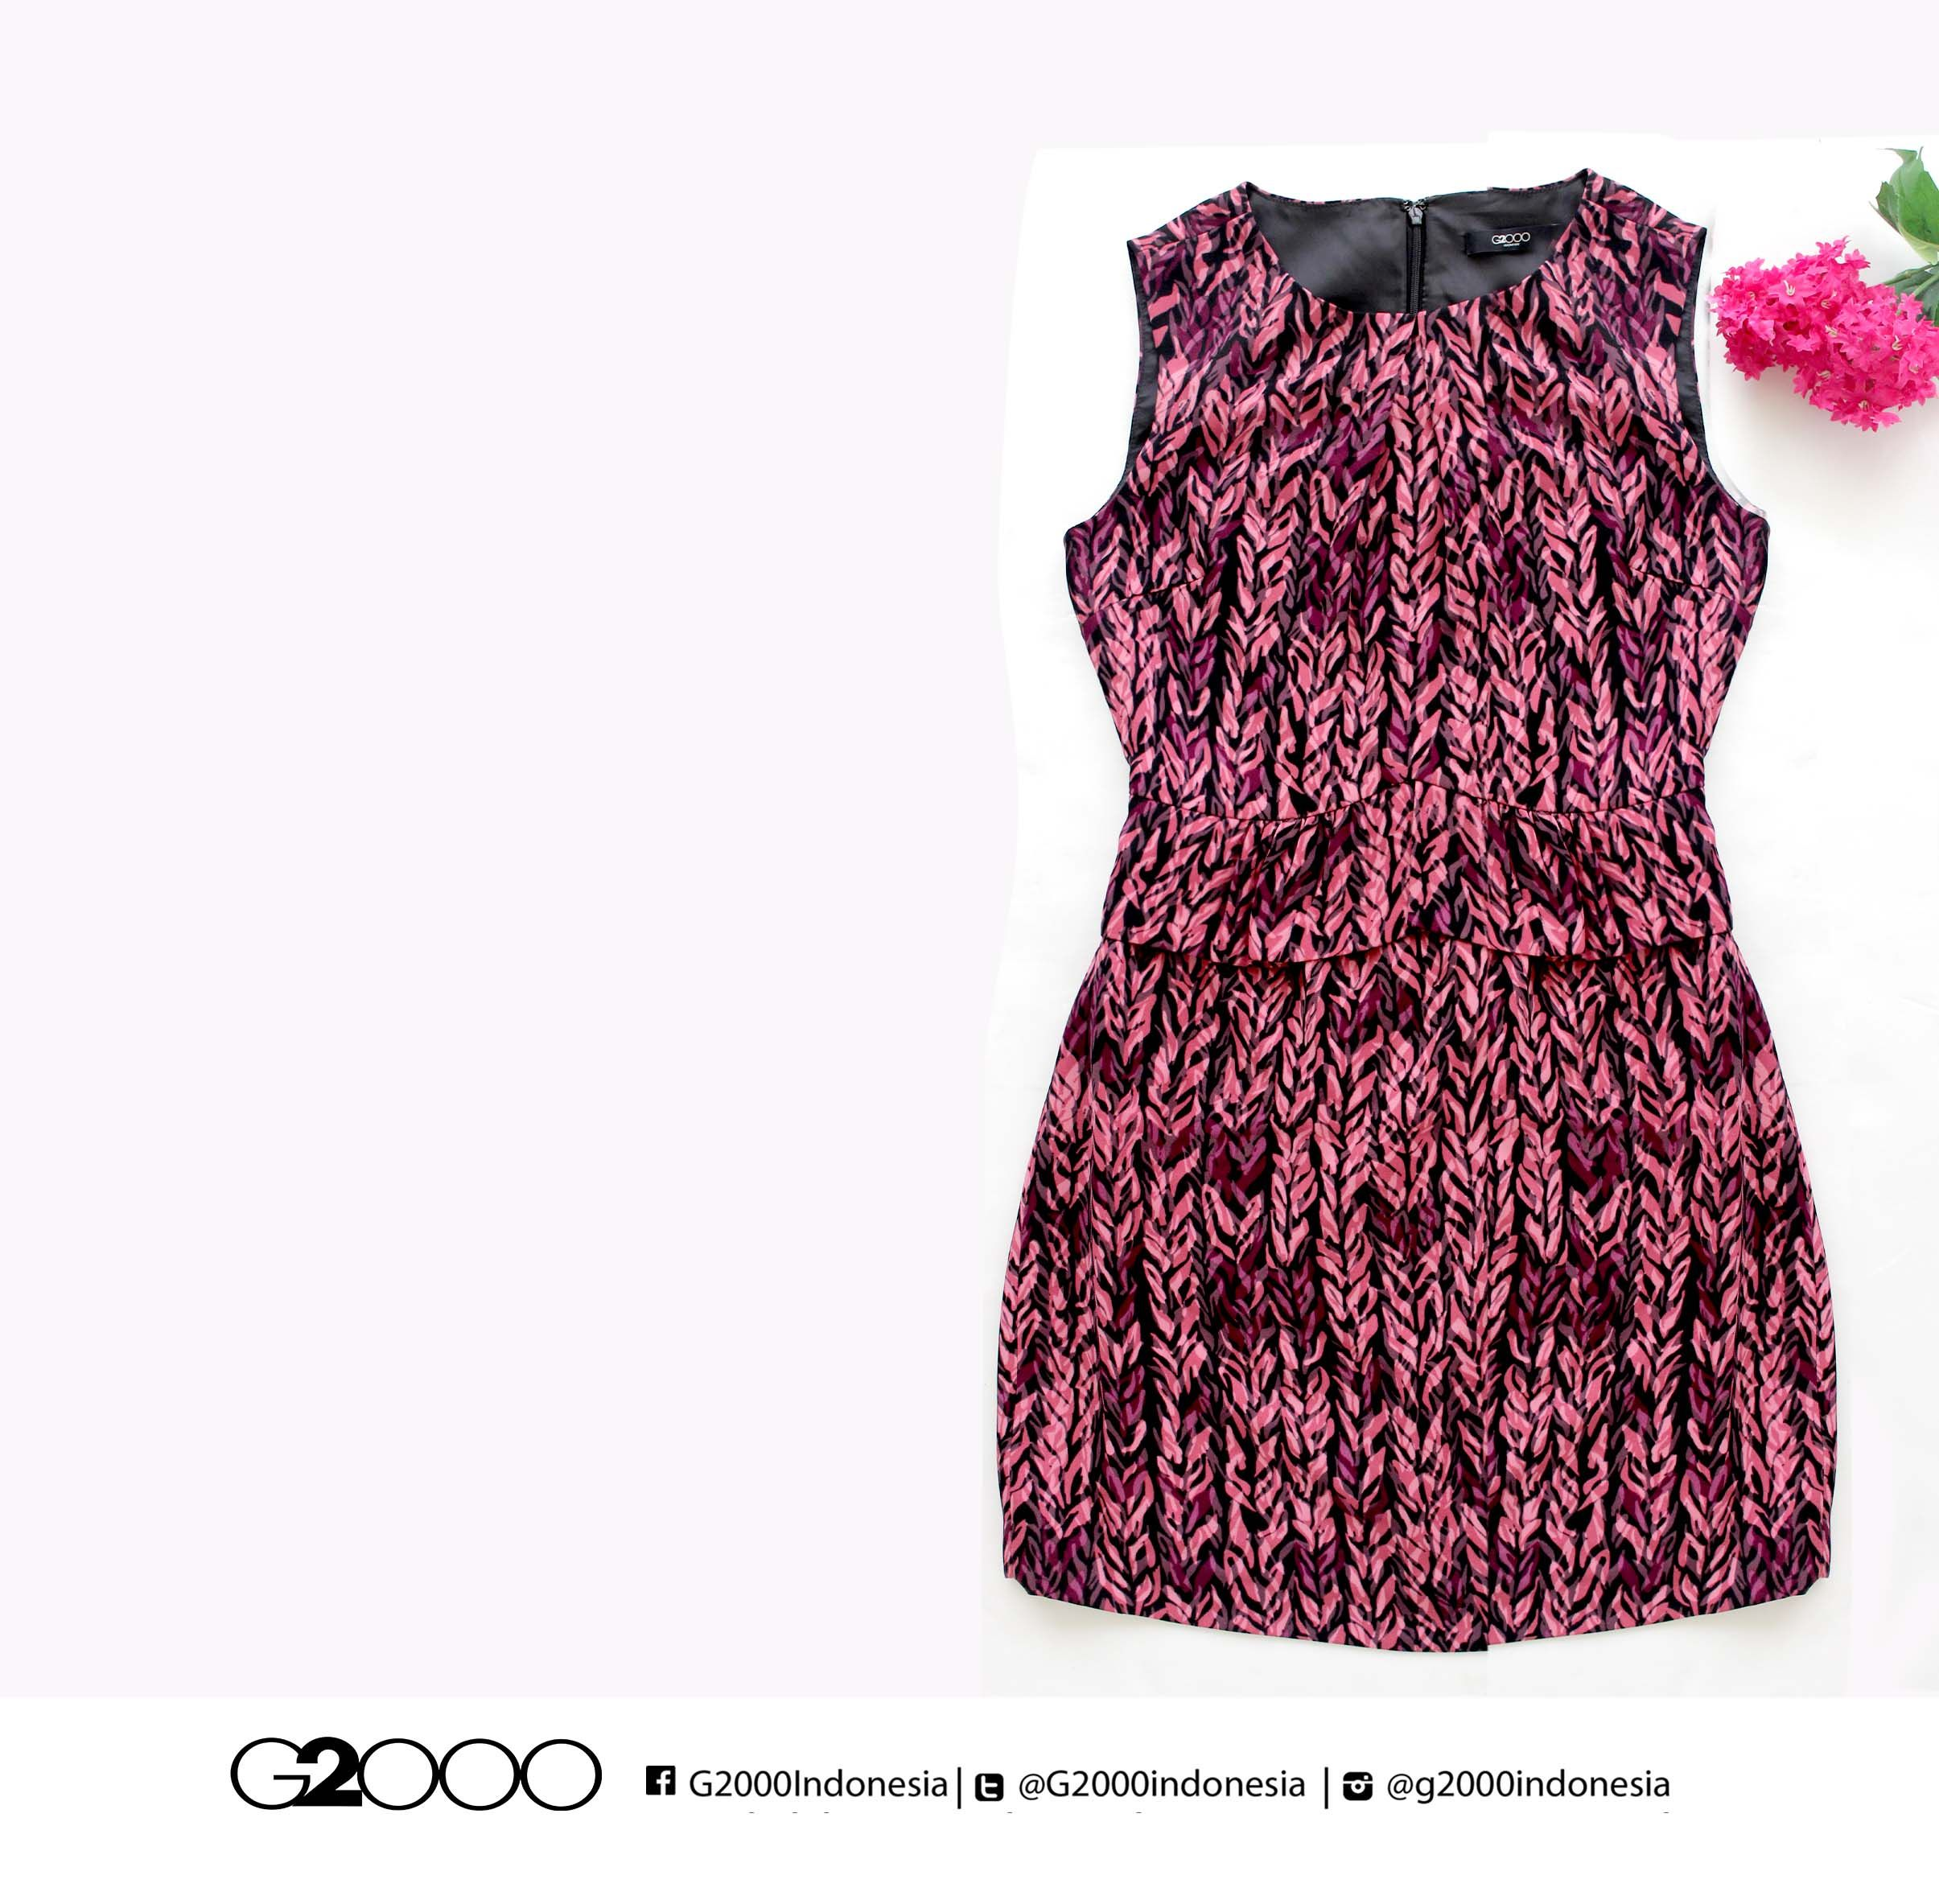 Try this elegant yet feminine look to make the best impression at any occasion